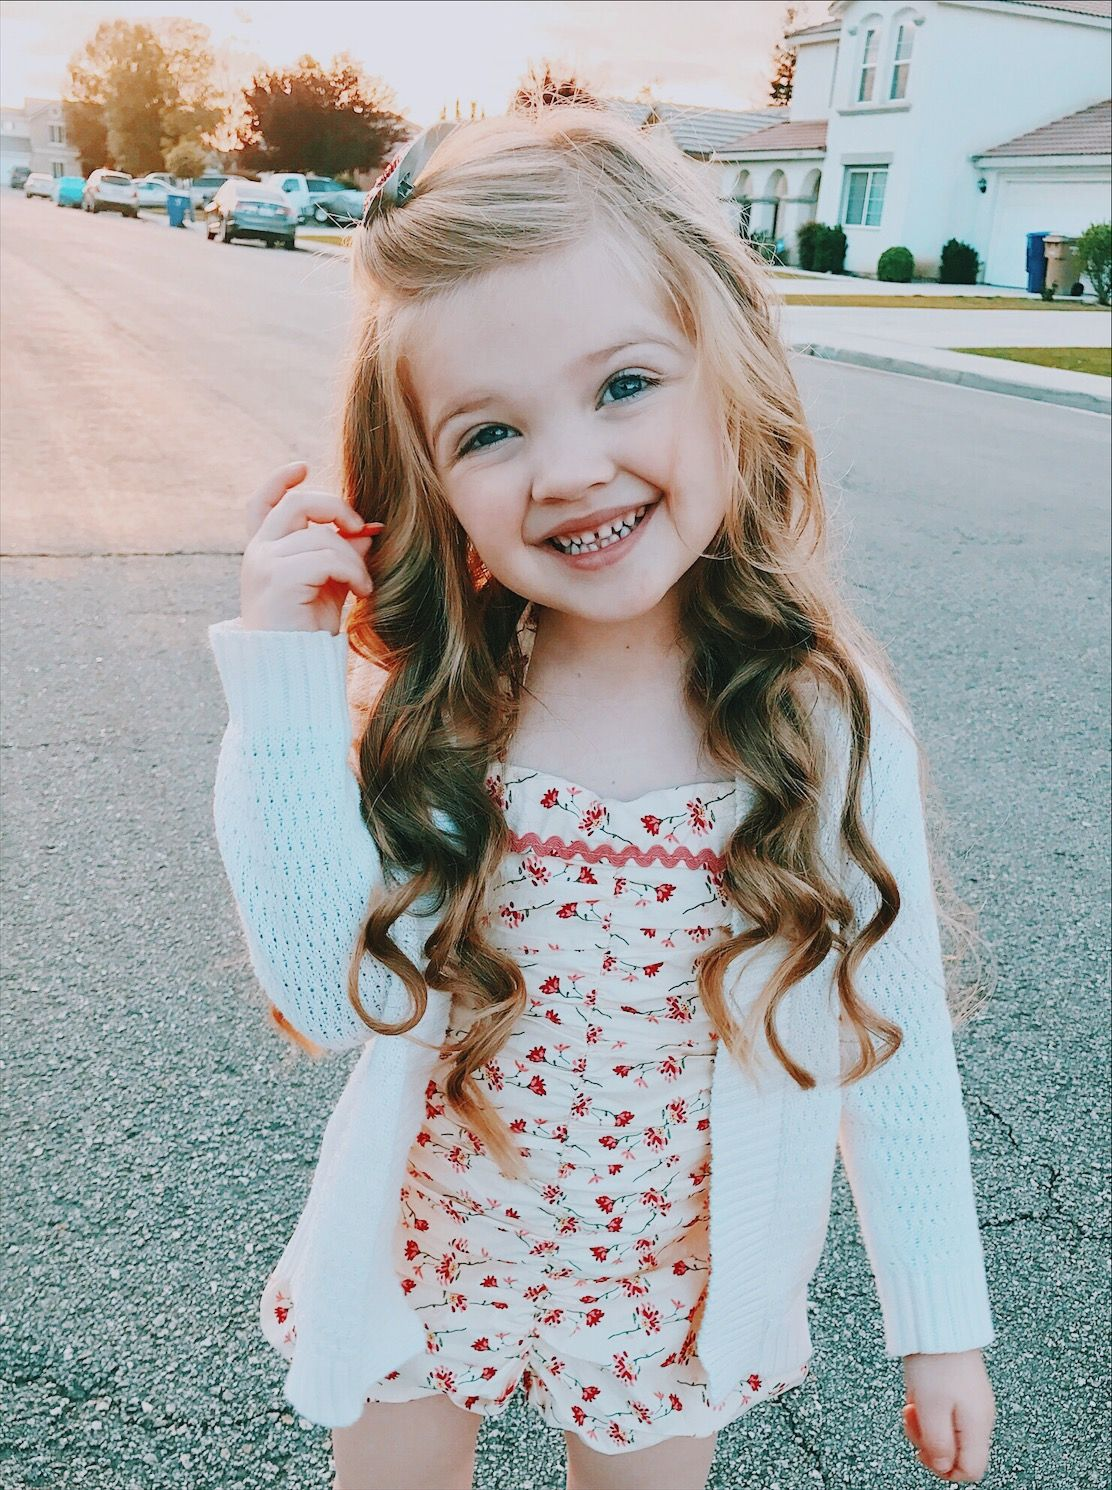 Little Girls Nails And Girls On Pinterest: Little Girl Hairstyle Long Hair Curls Curled Wavy Beach